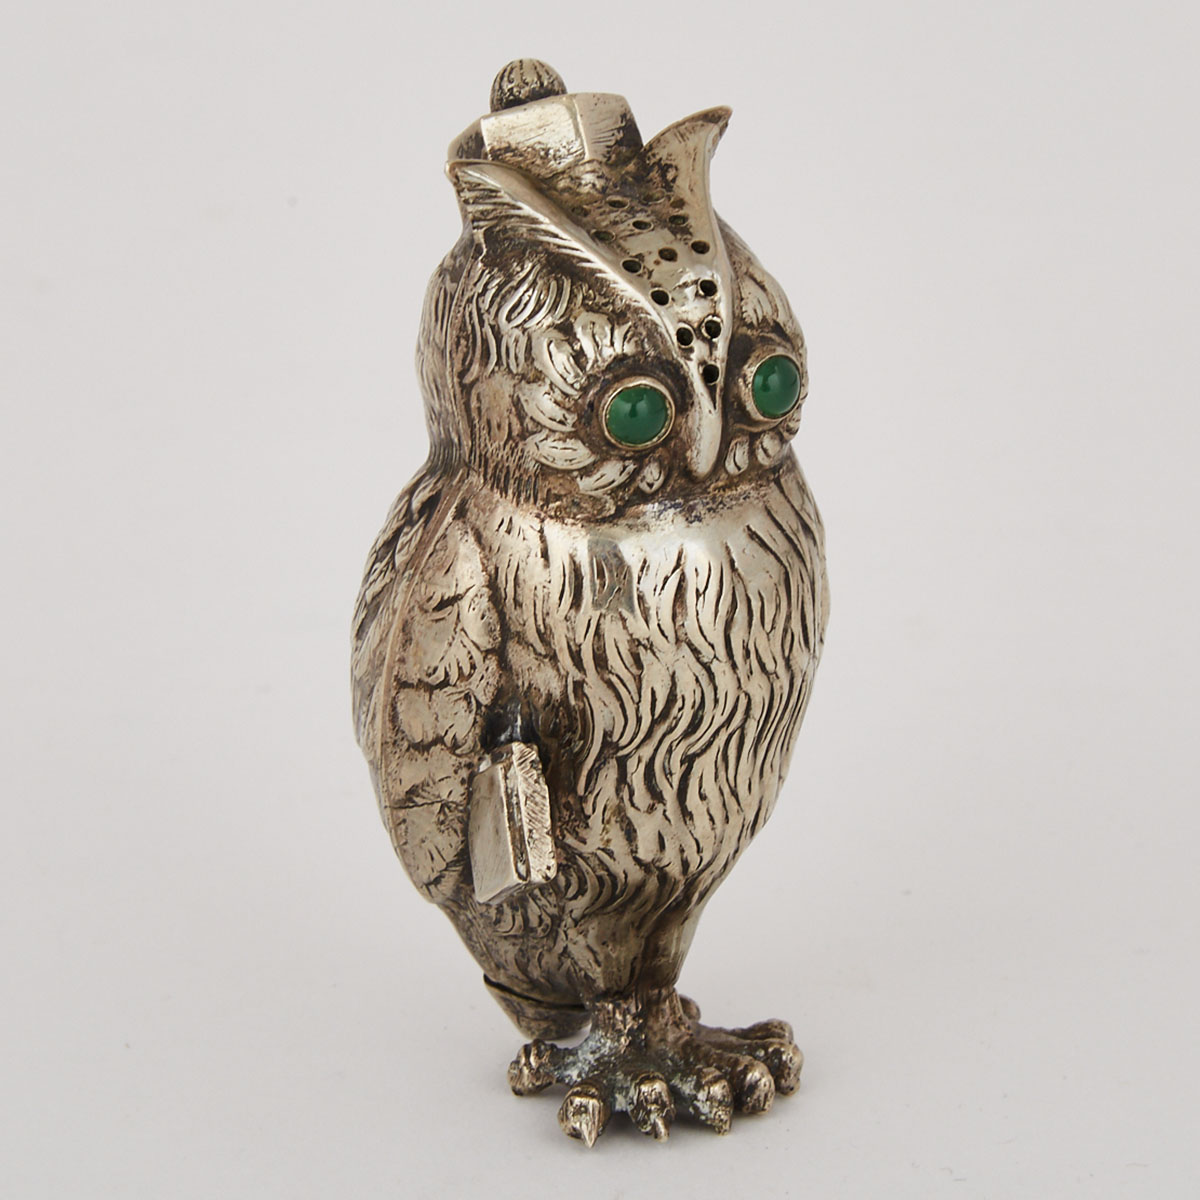 Nickel Silver Owl Form Pepperette, 20th century